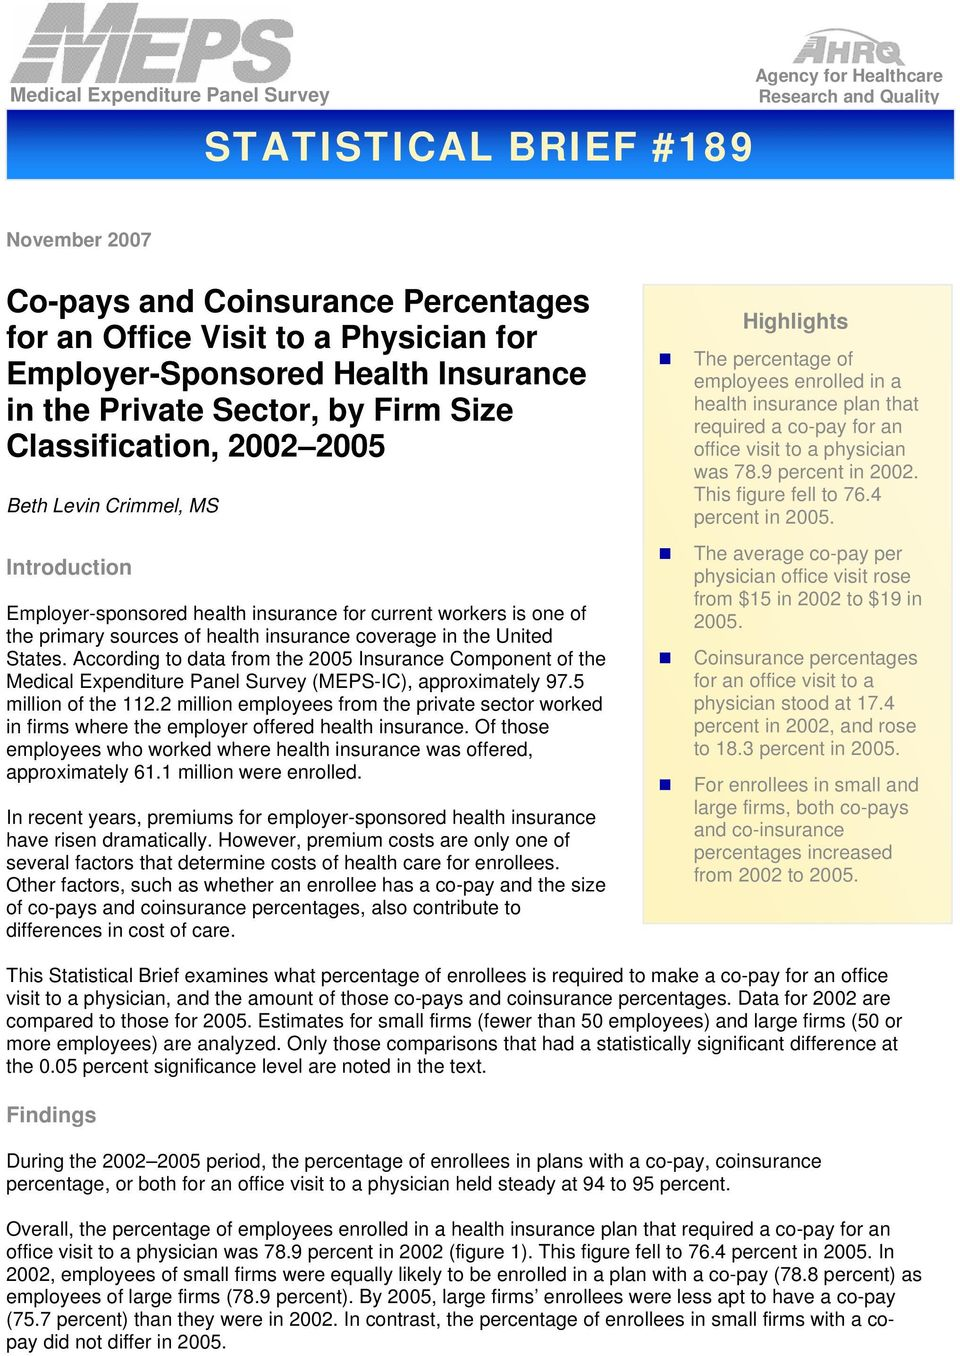 primary sources of health insurance coverage in the United States. According to data from the 05 Insurance Component of the Medical Expenditure Panel Survey (MEPS-IC), approximately 97.